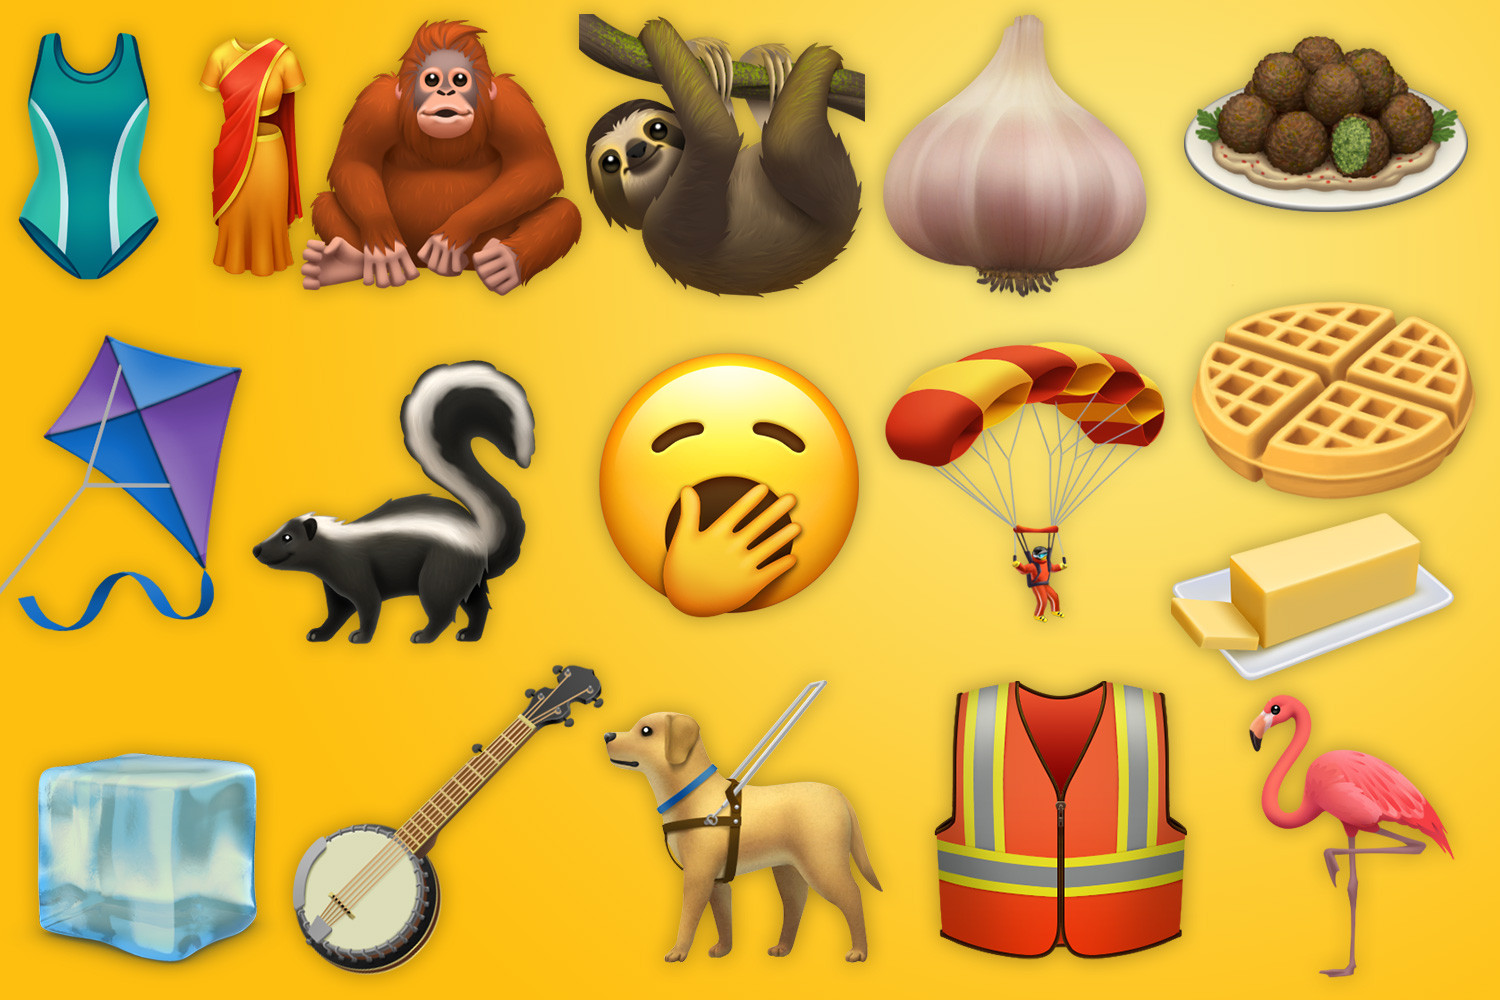 16 yrs old boynsparency clipart music tones clip art black and white download Apple reveals dozens of new emoji coming to your iPhone – including ... clip art black and white download